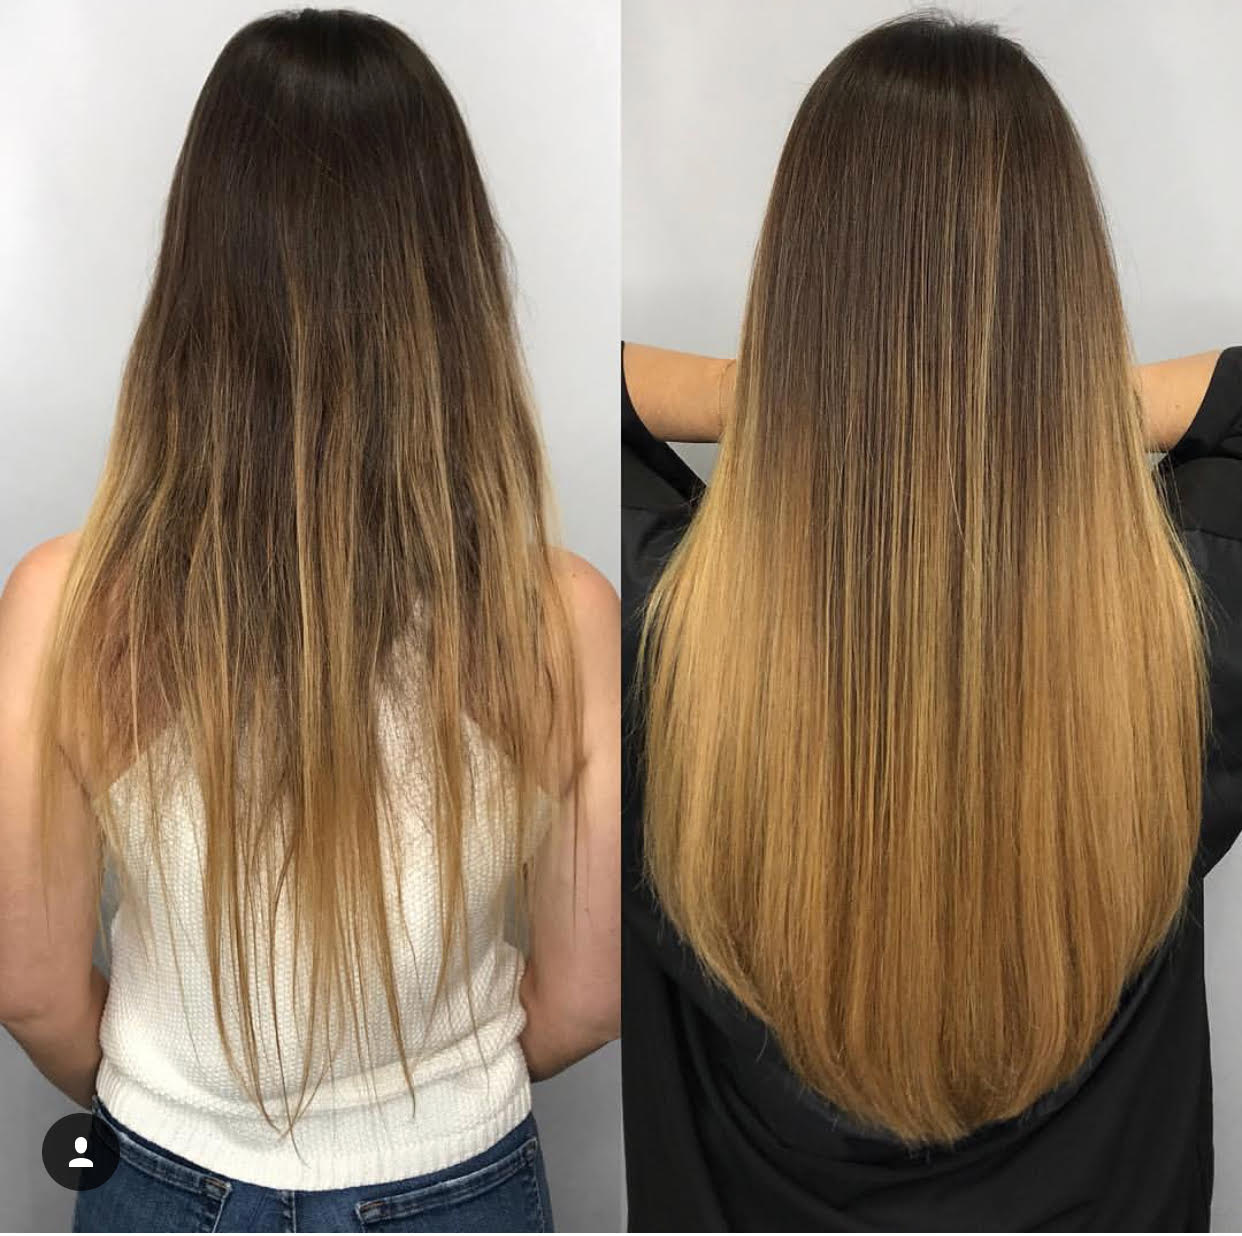 Hair Extensions Gallery Latest Hair Extension Salon Installations